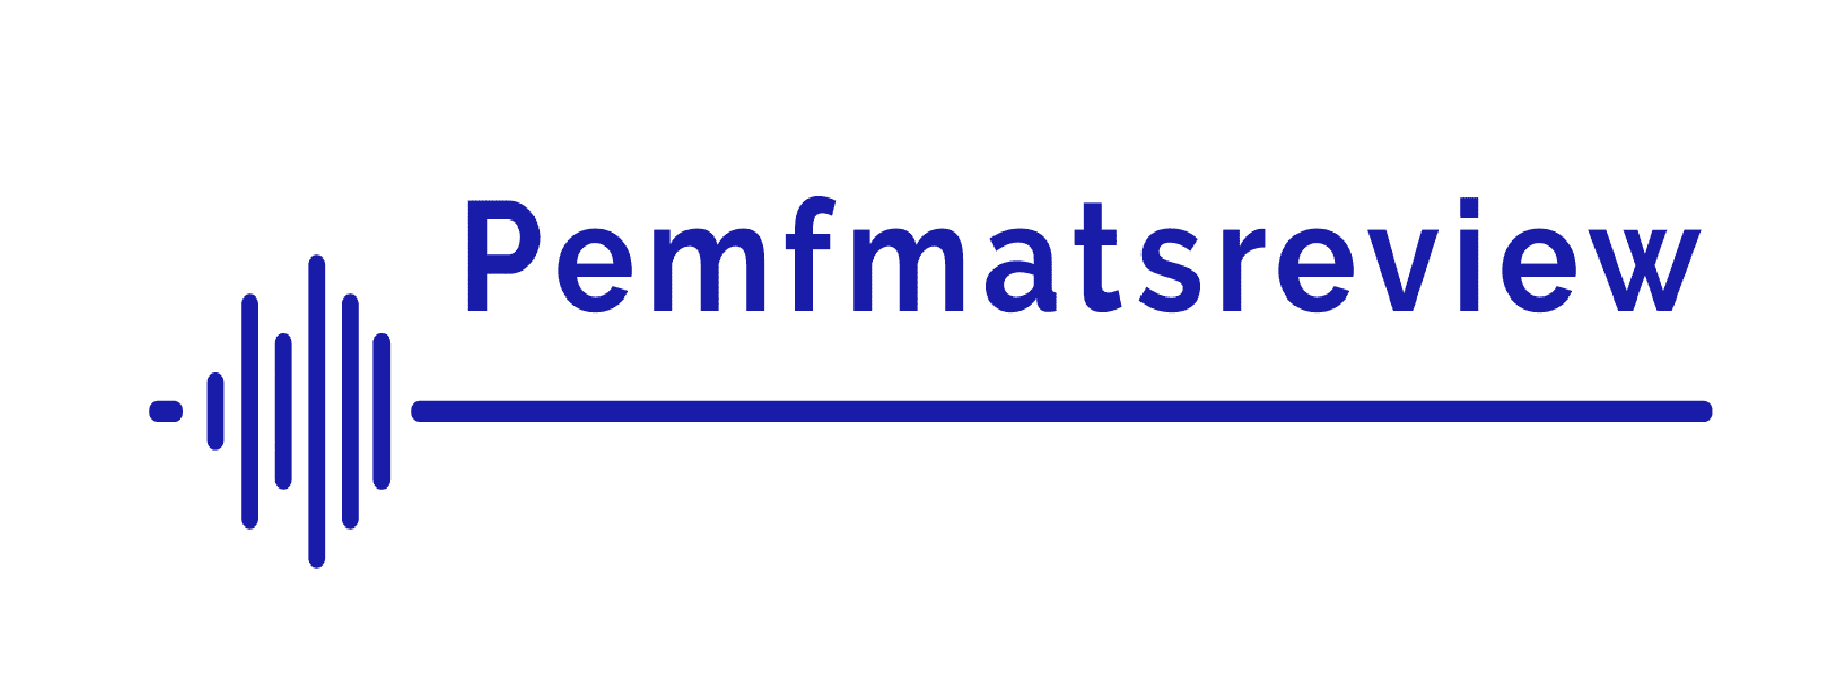 PEMF MATS REVIEW – Best PEMF Products Reviewed of 2019